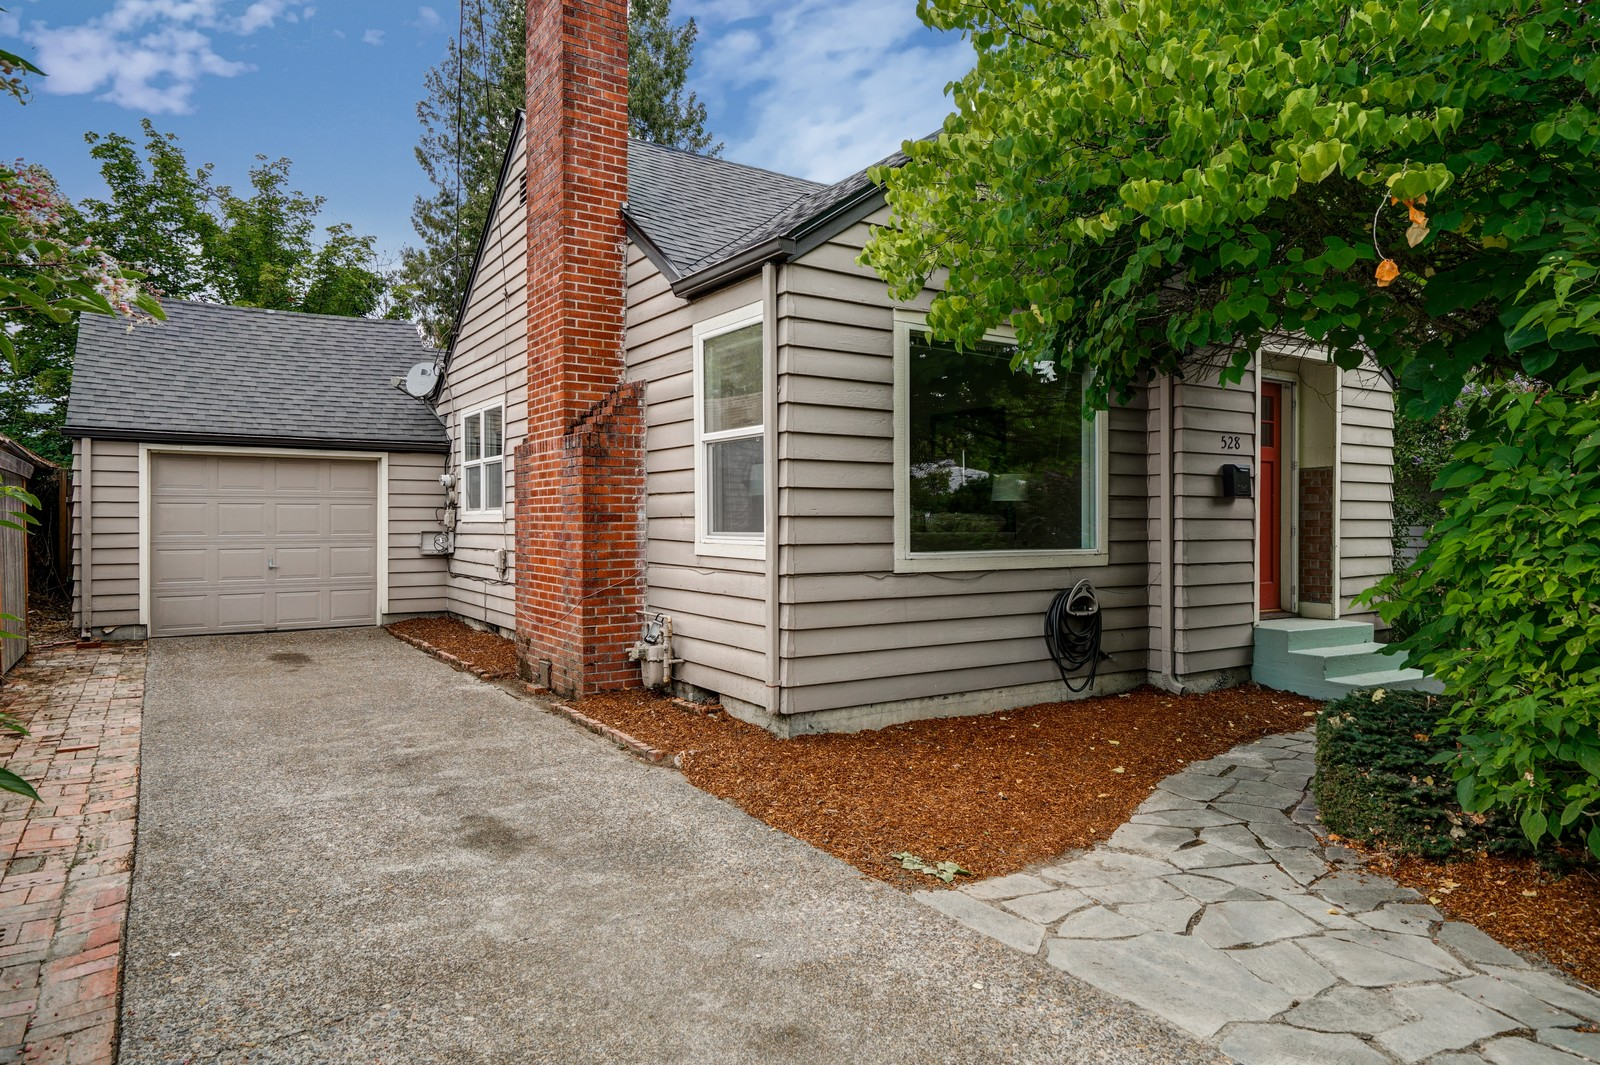 SOLD: 528 NW 17th Street, Corvallis. $299,000